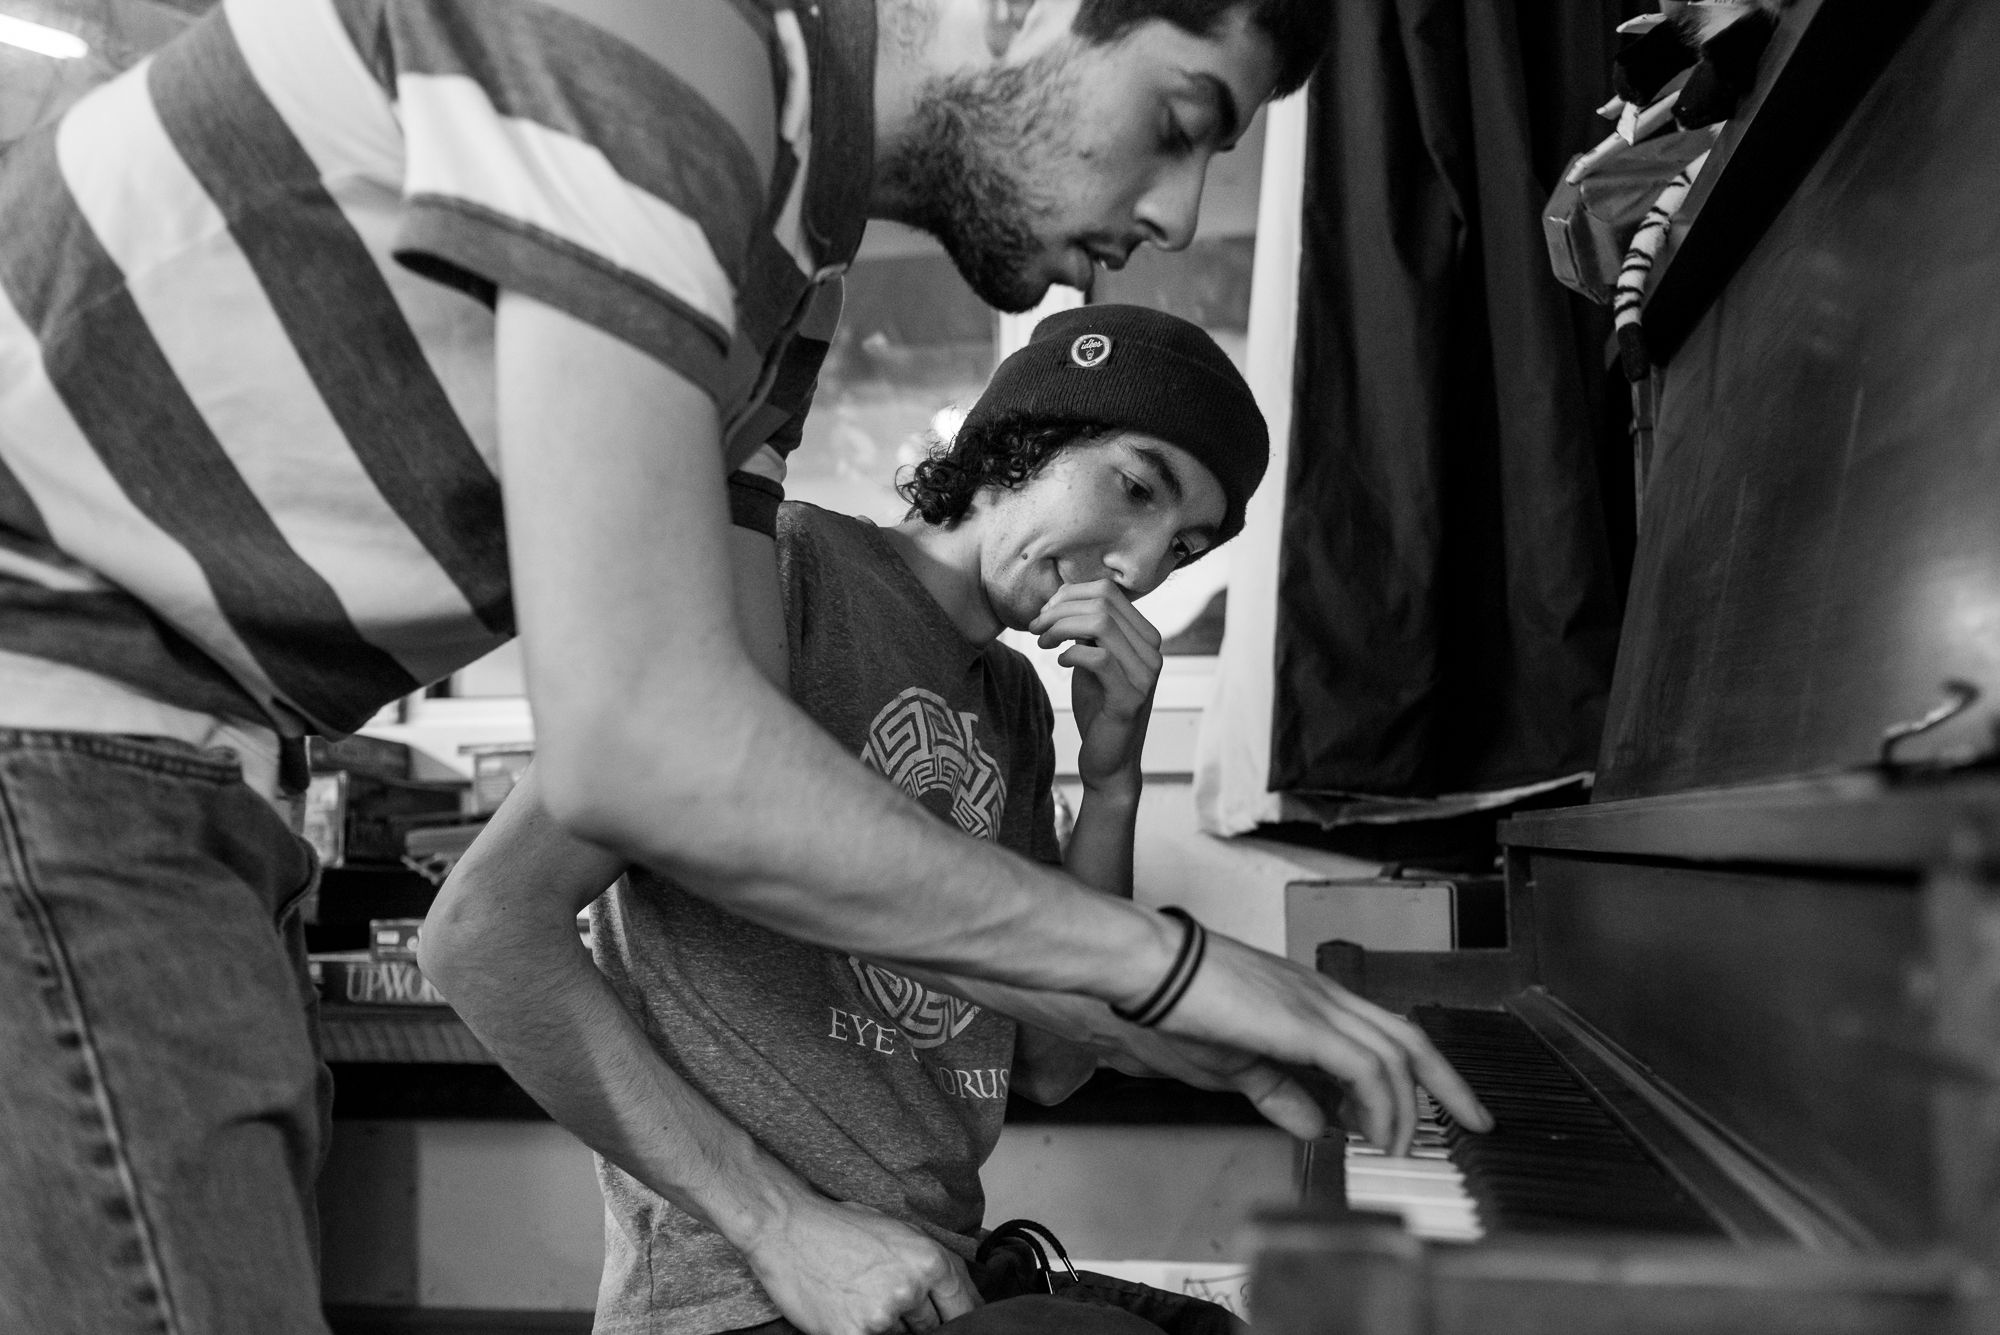 Marc-Antoine (right) and Anthony (left) play the piano after eating dinner at Friday Night Social Club.    In this photo essay I show youth on the autism spectrum engaged in programming at Spectrum Productions.   Spectrum Productions provides an opportunity for youth to gather together - they imagine, story board, write scripts, draw and create video while interacting with each other and with staff, something that is not always an easy task.